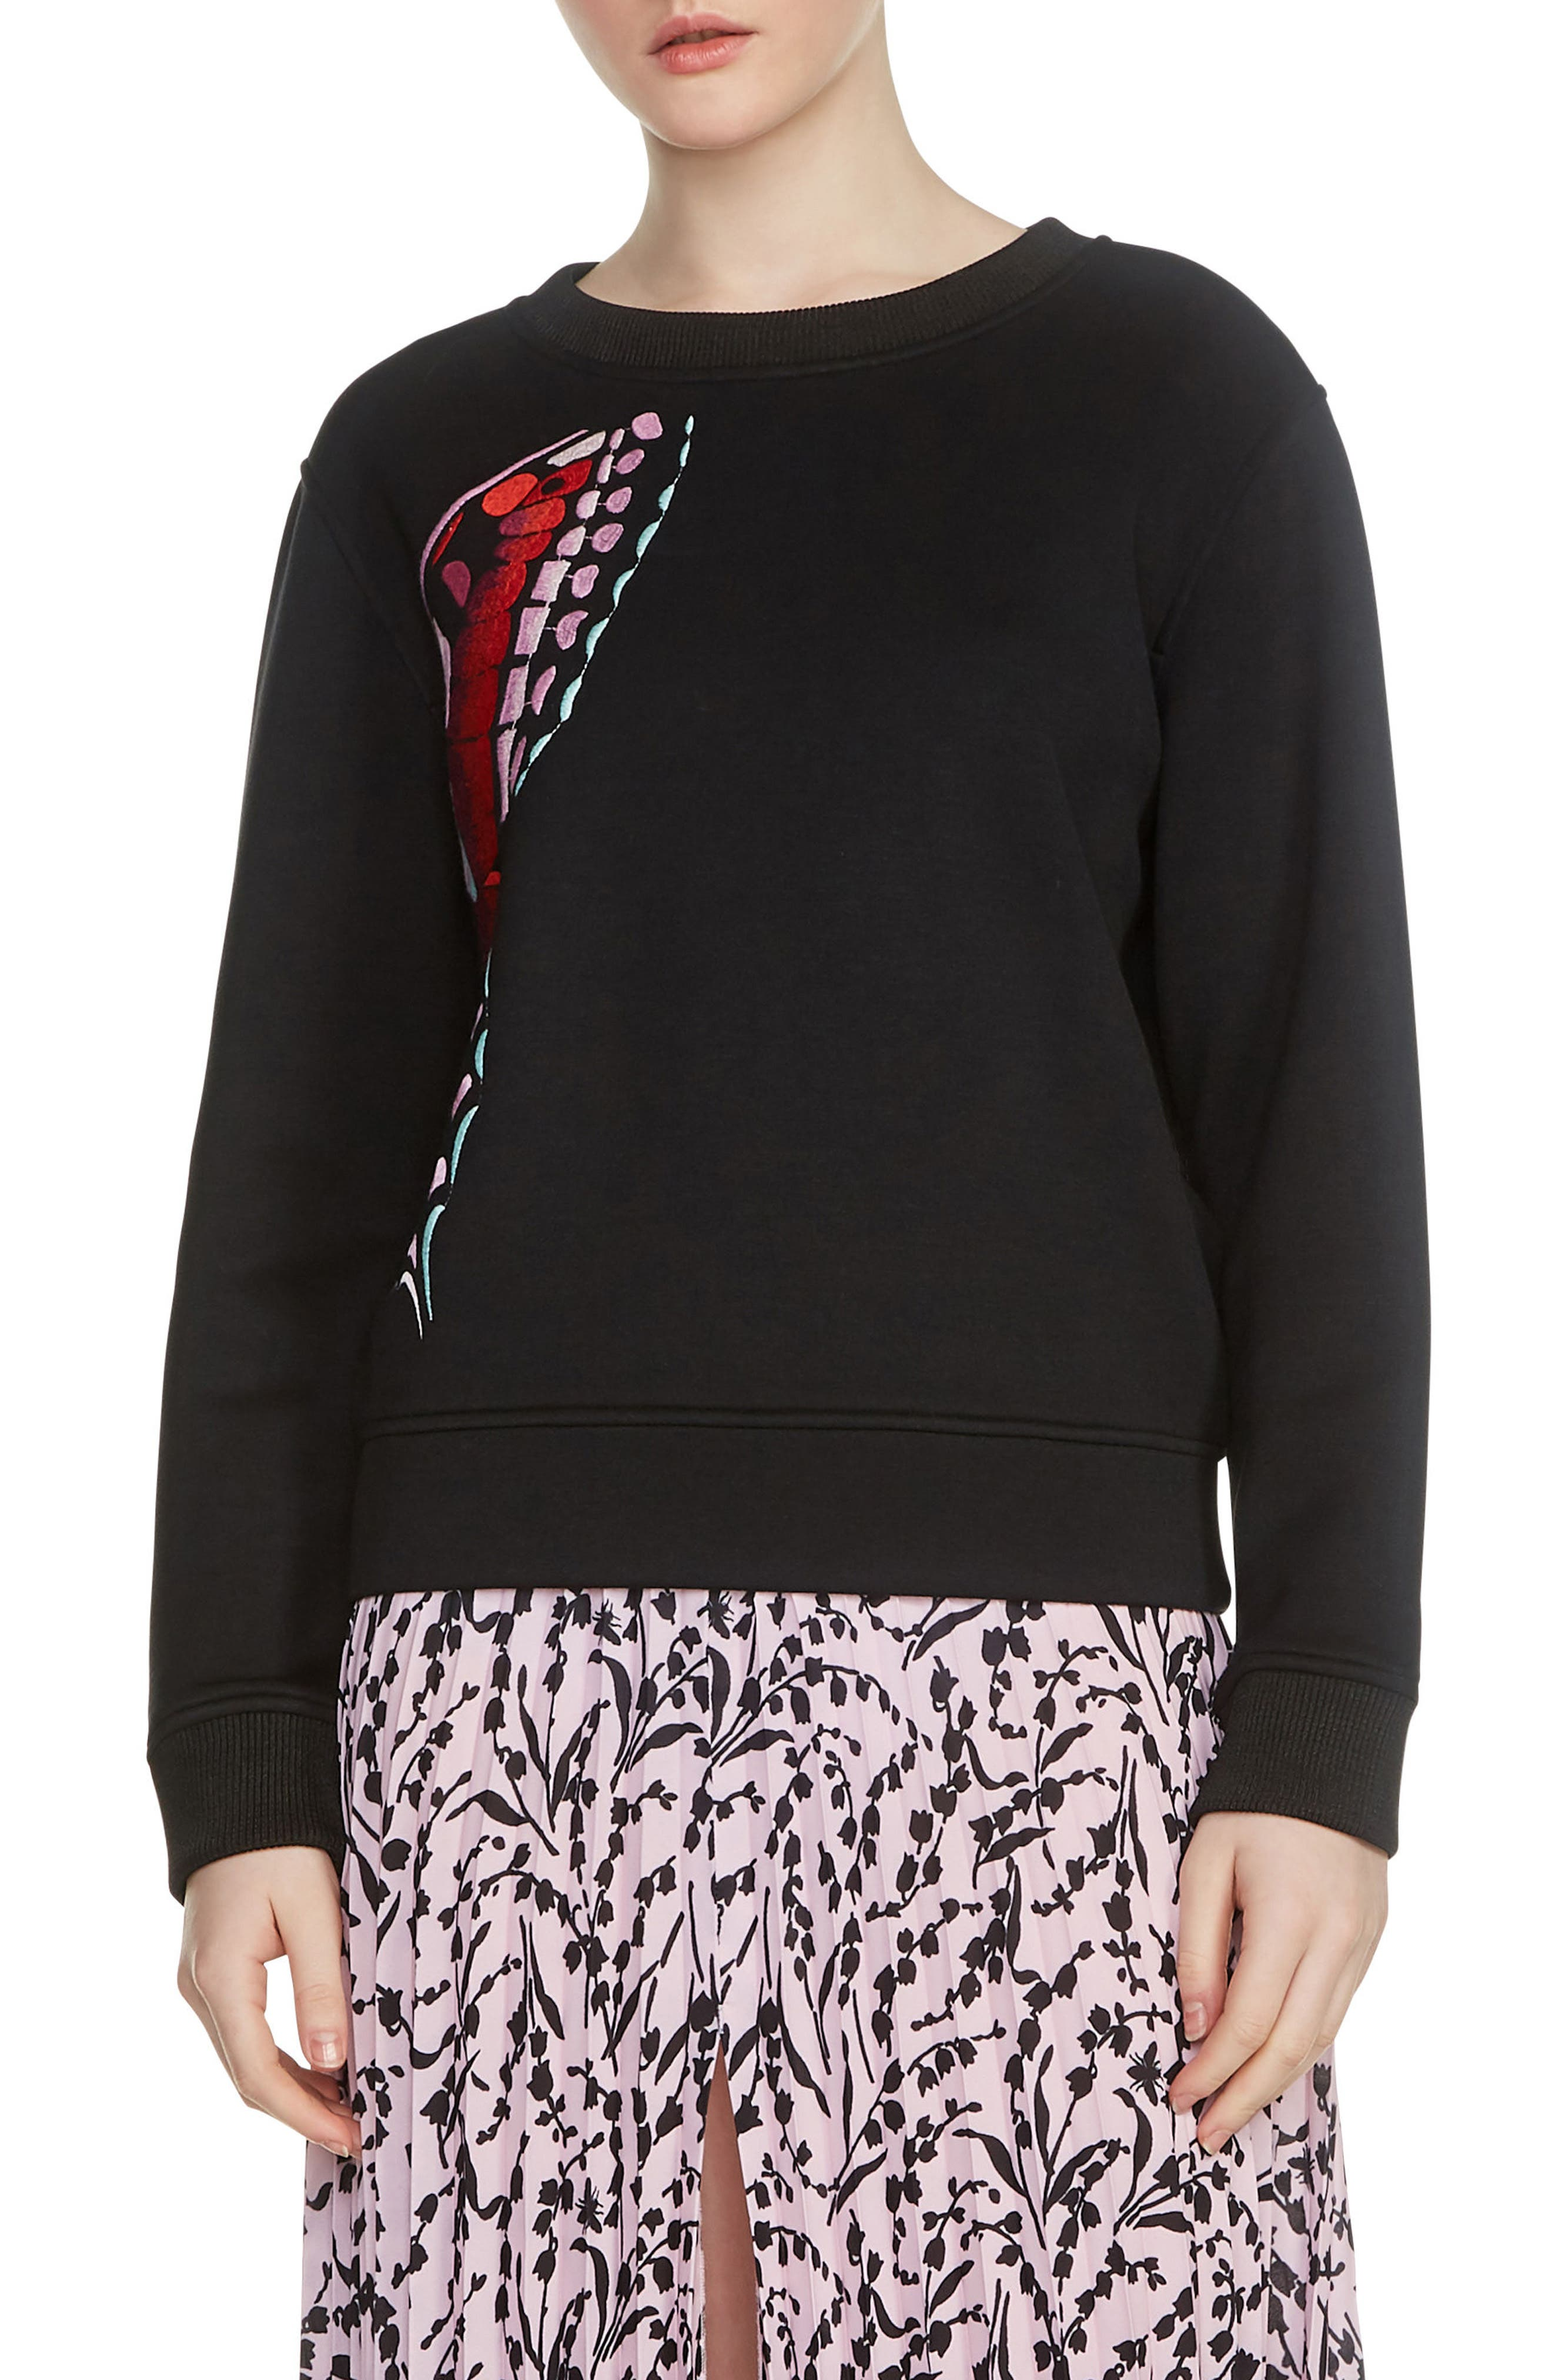 Theophile Embroidered Sweatshirt,                         Main,                         color, Black 210